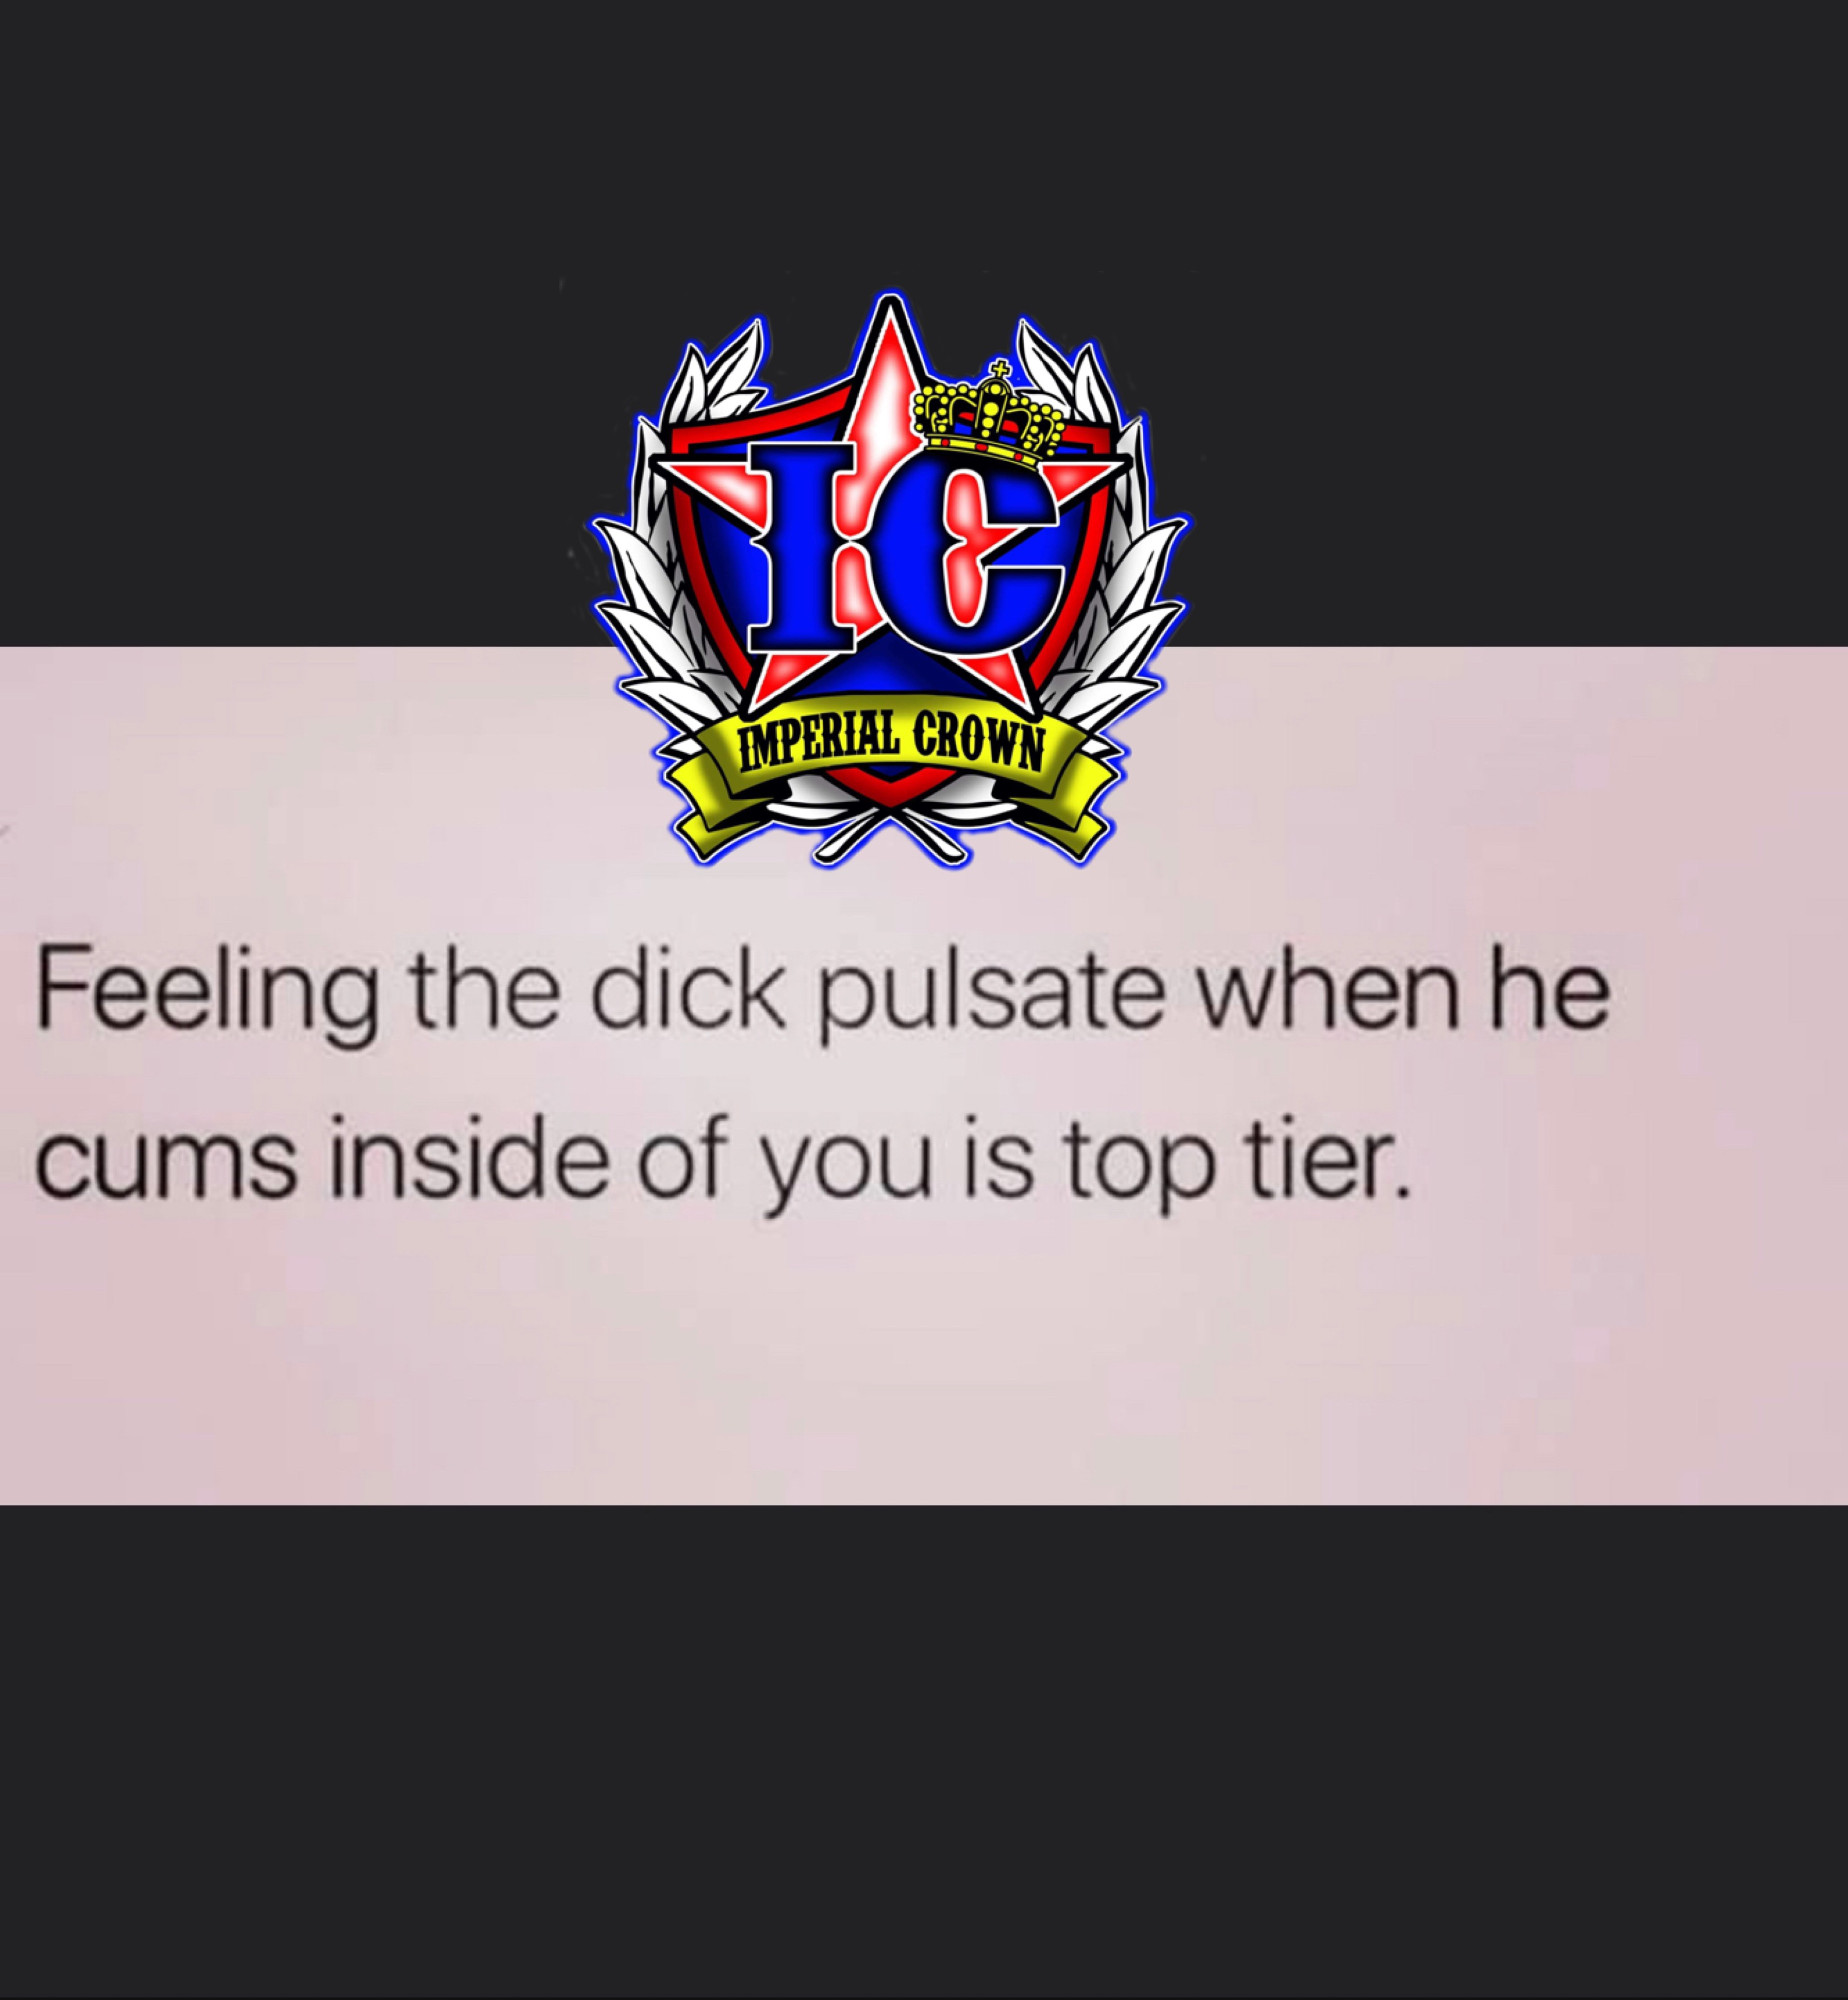 Feeling the dick pulsate when he cums inside of you is top tier